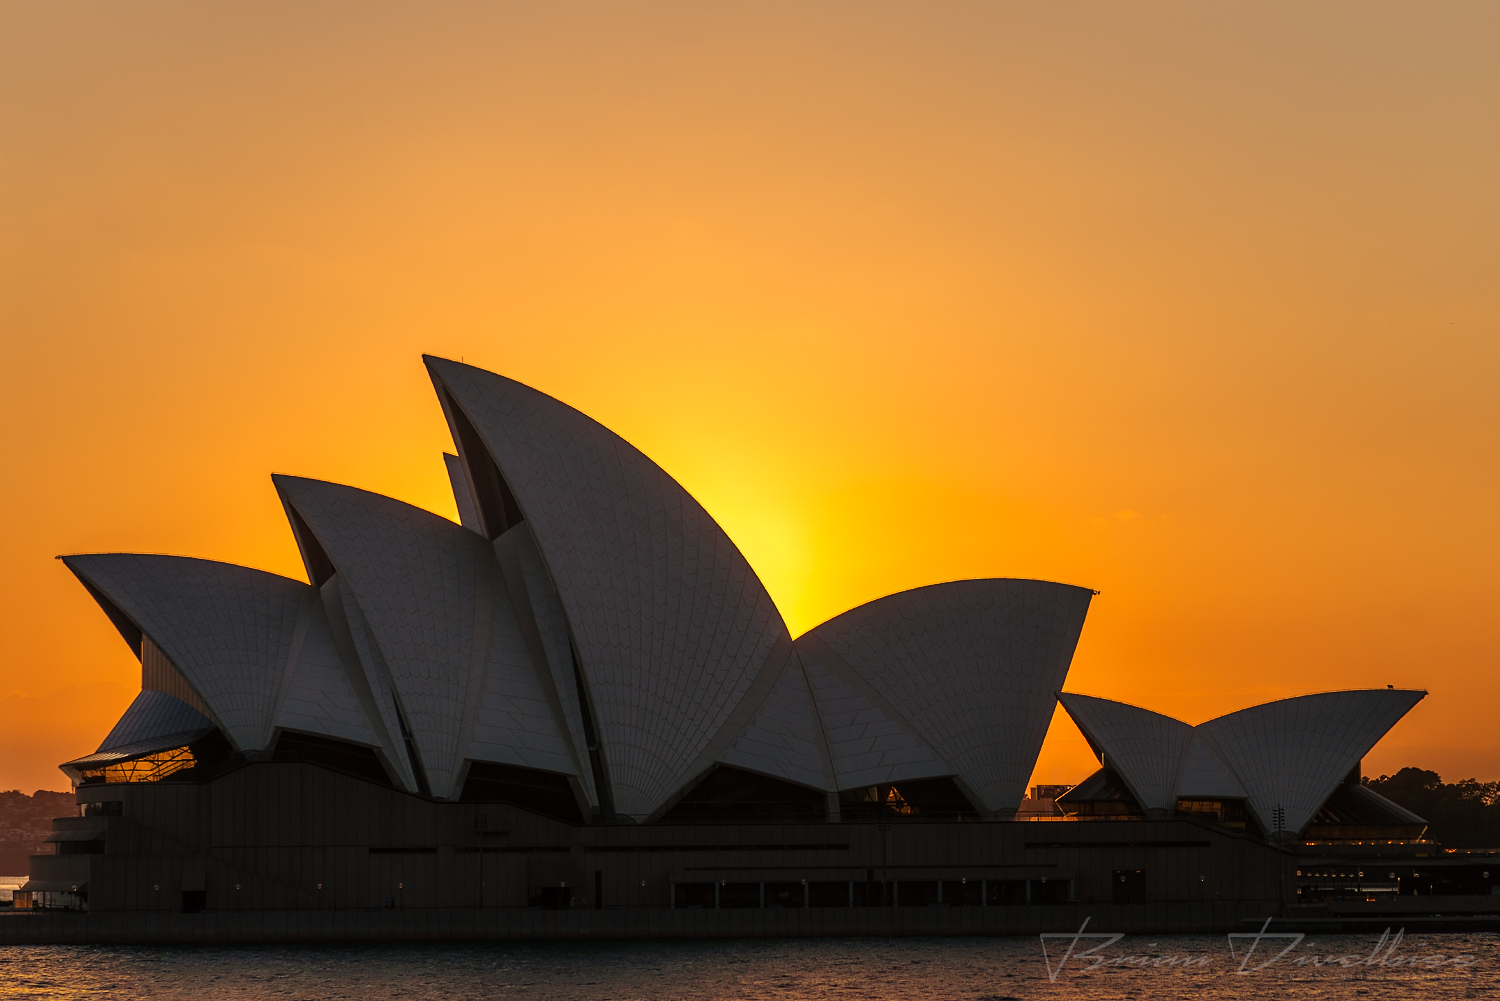 Sun rising behind Sydney Opera House viewed from Dawes Point.